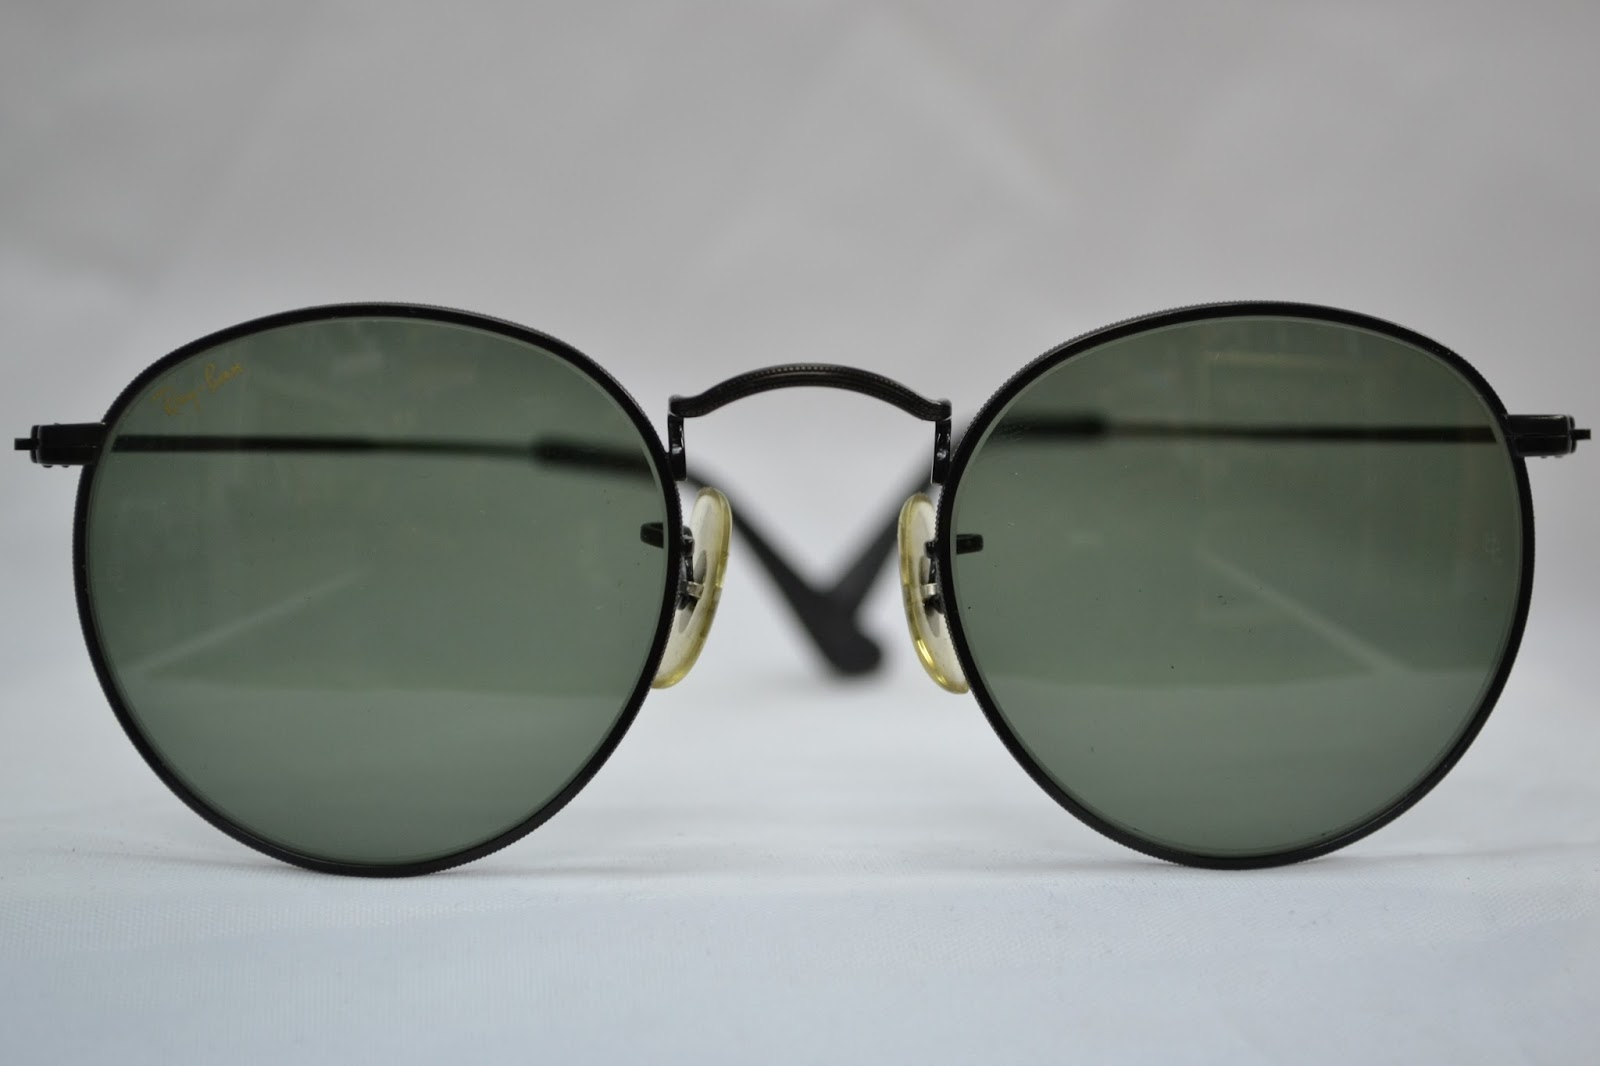 9d215084f4a3 ray ban price usa